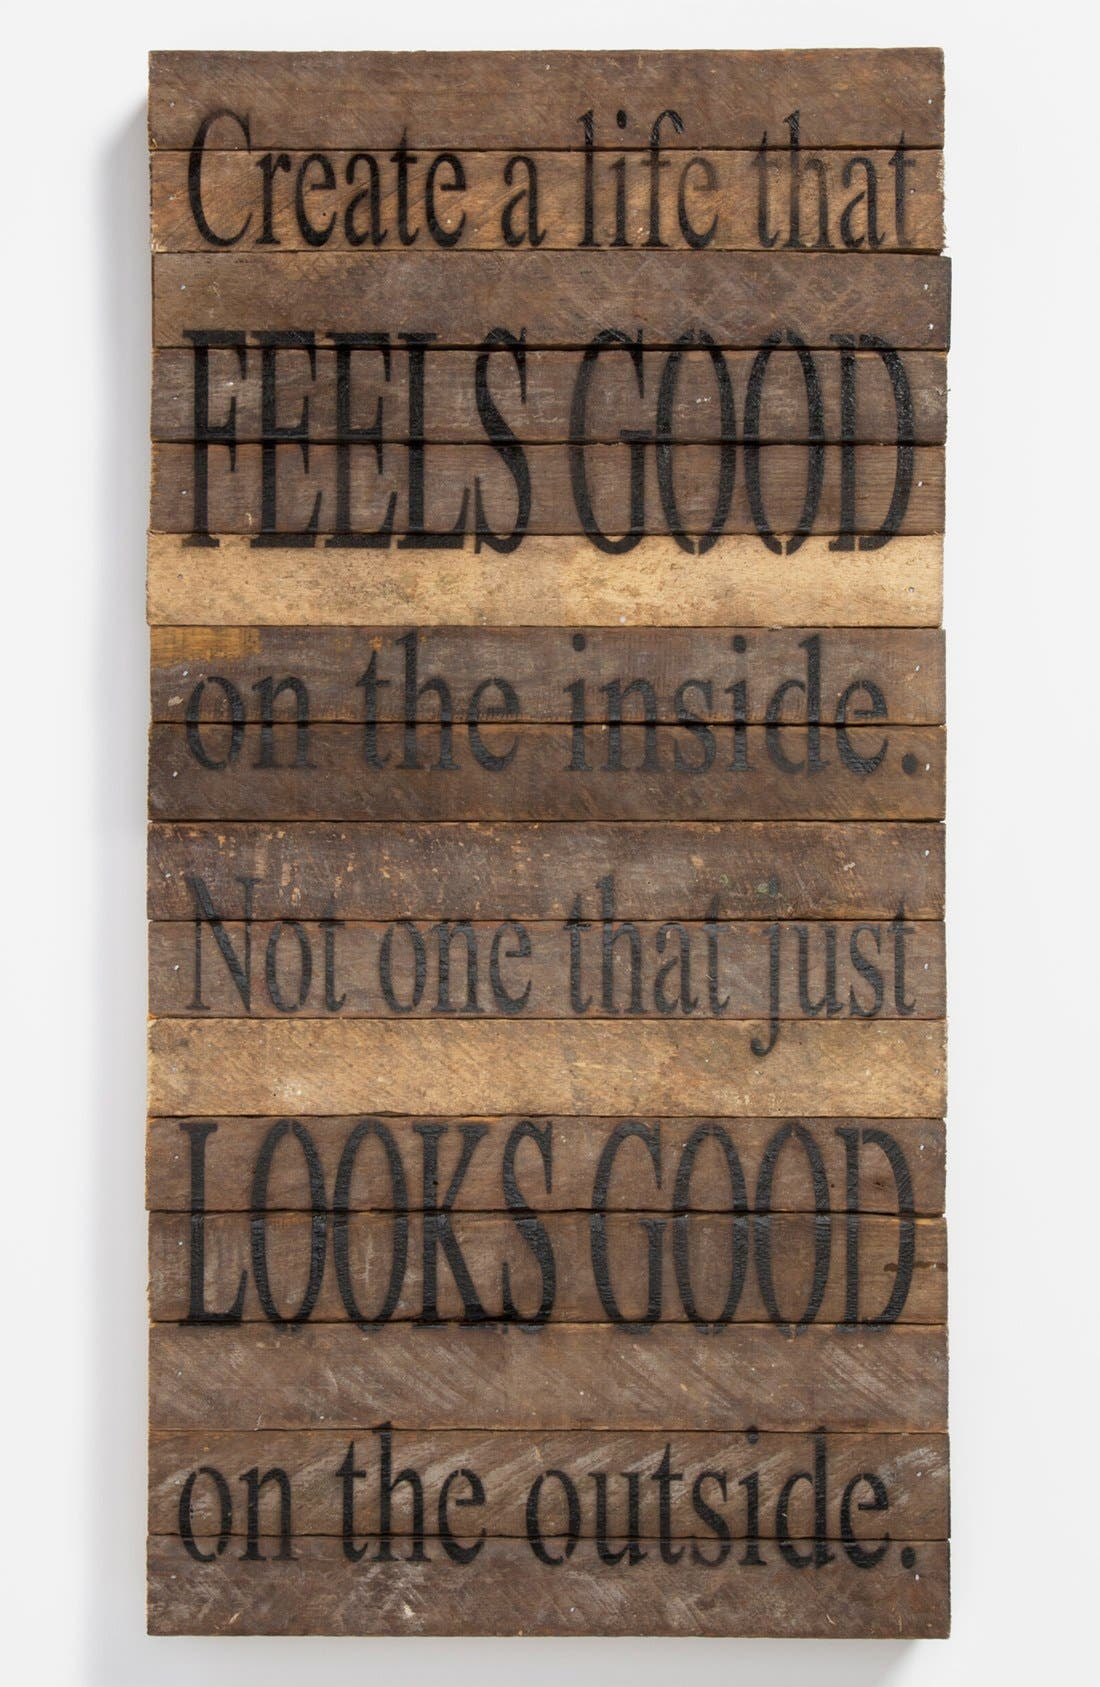 Alternate Image 1 Selected - 'Create a Life that Feels Good' Wood Wall Plaque